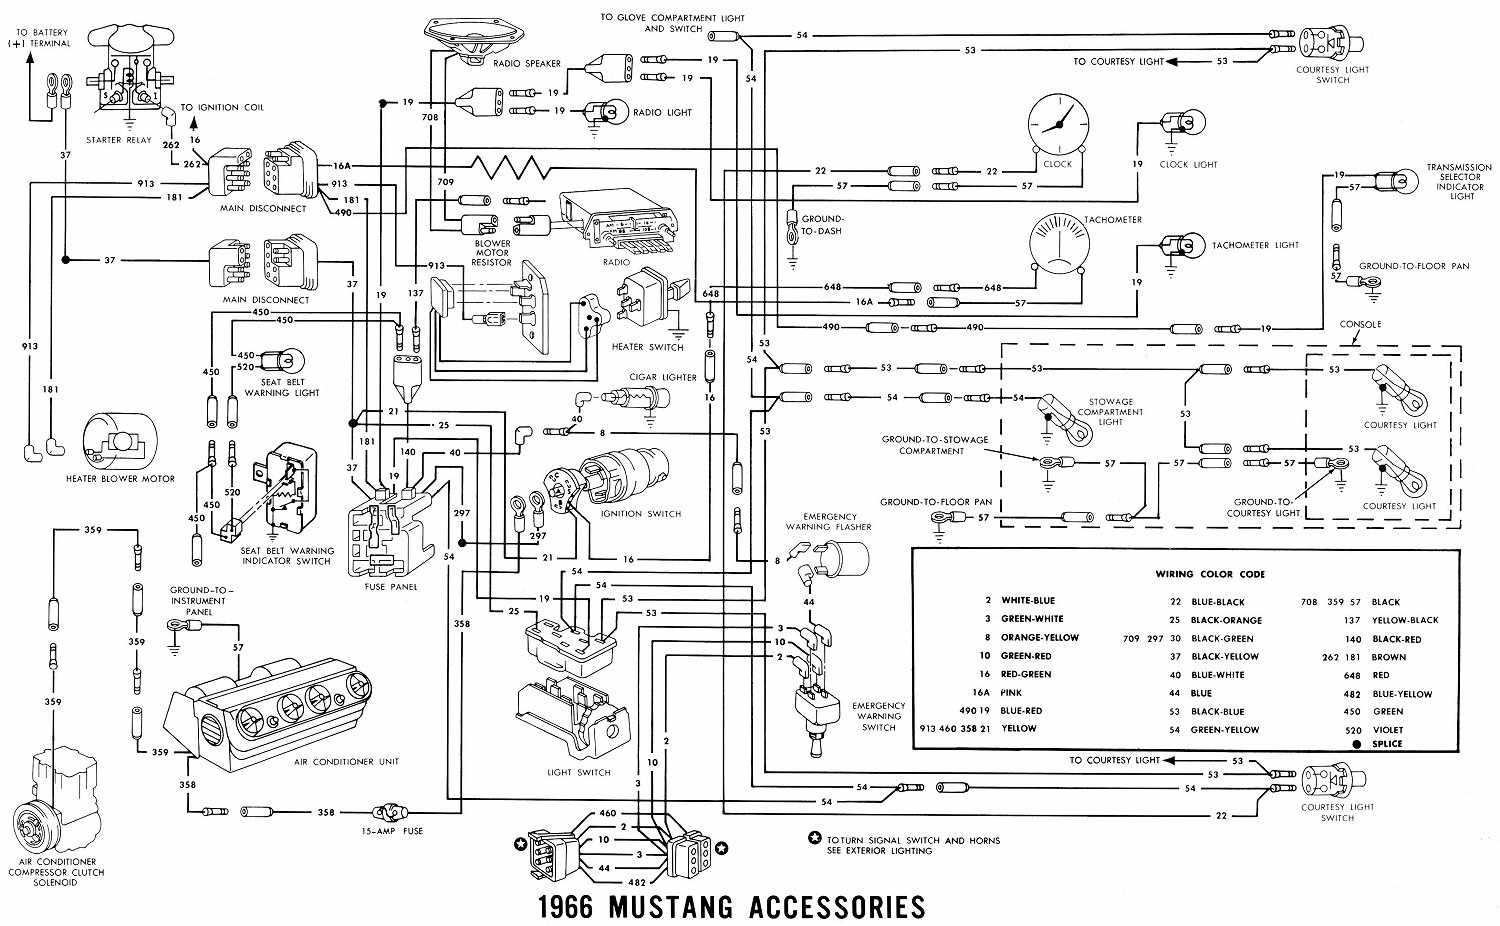 Chevy Aftermarket Stereo Harness Diagram besides 1986 Harley Sportster Wiring Diagram also Bmw Wiring Diagram in addition Chevy 1500 Tail Light Wiring Harness Replace together with Wireharness Mazda1. on bmw wiring harness color codes